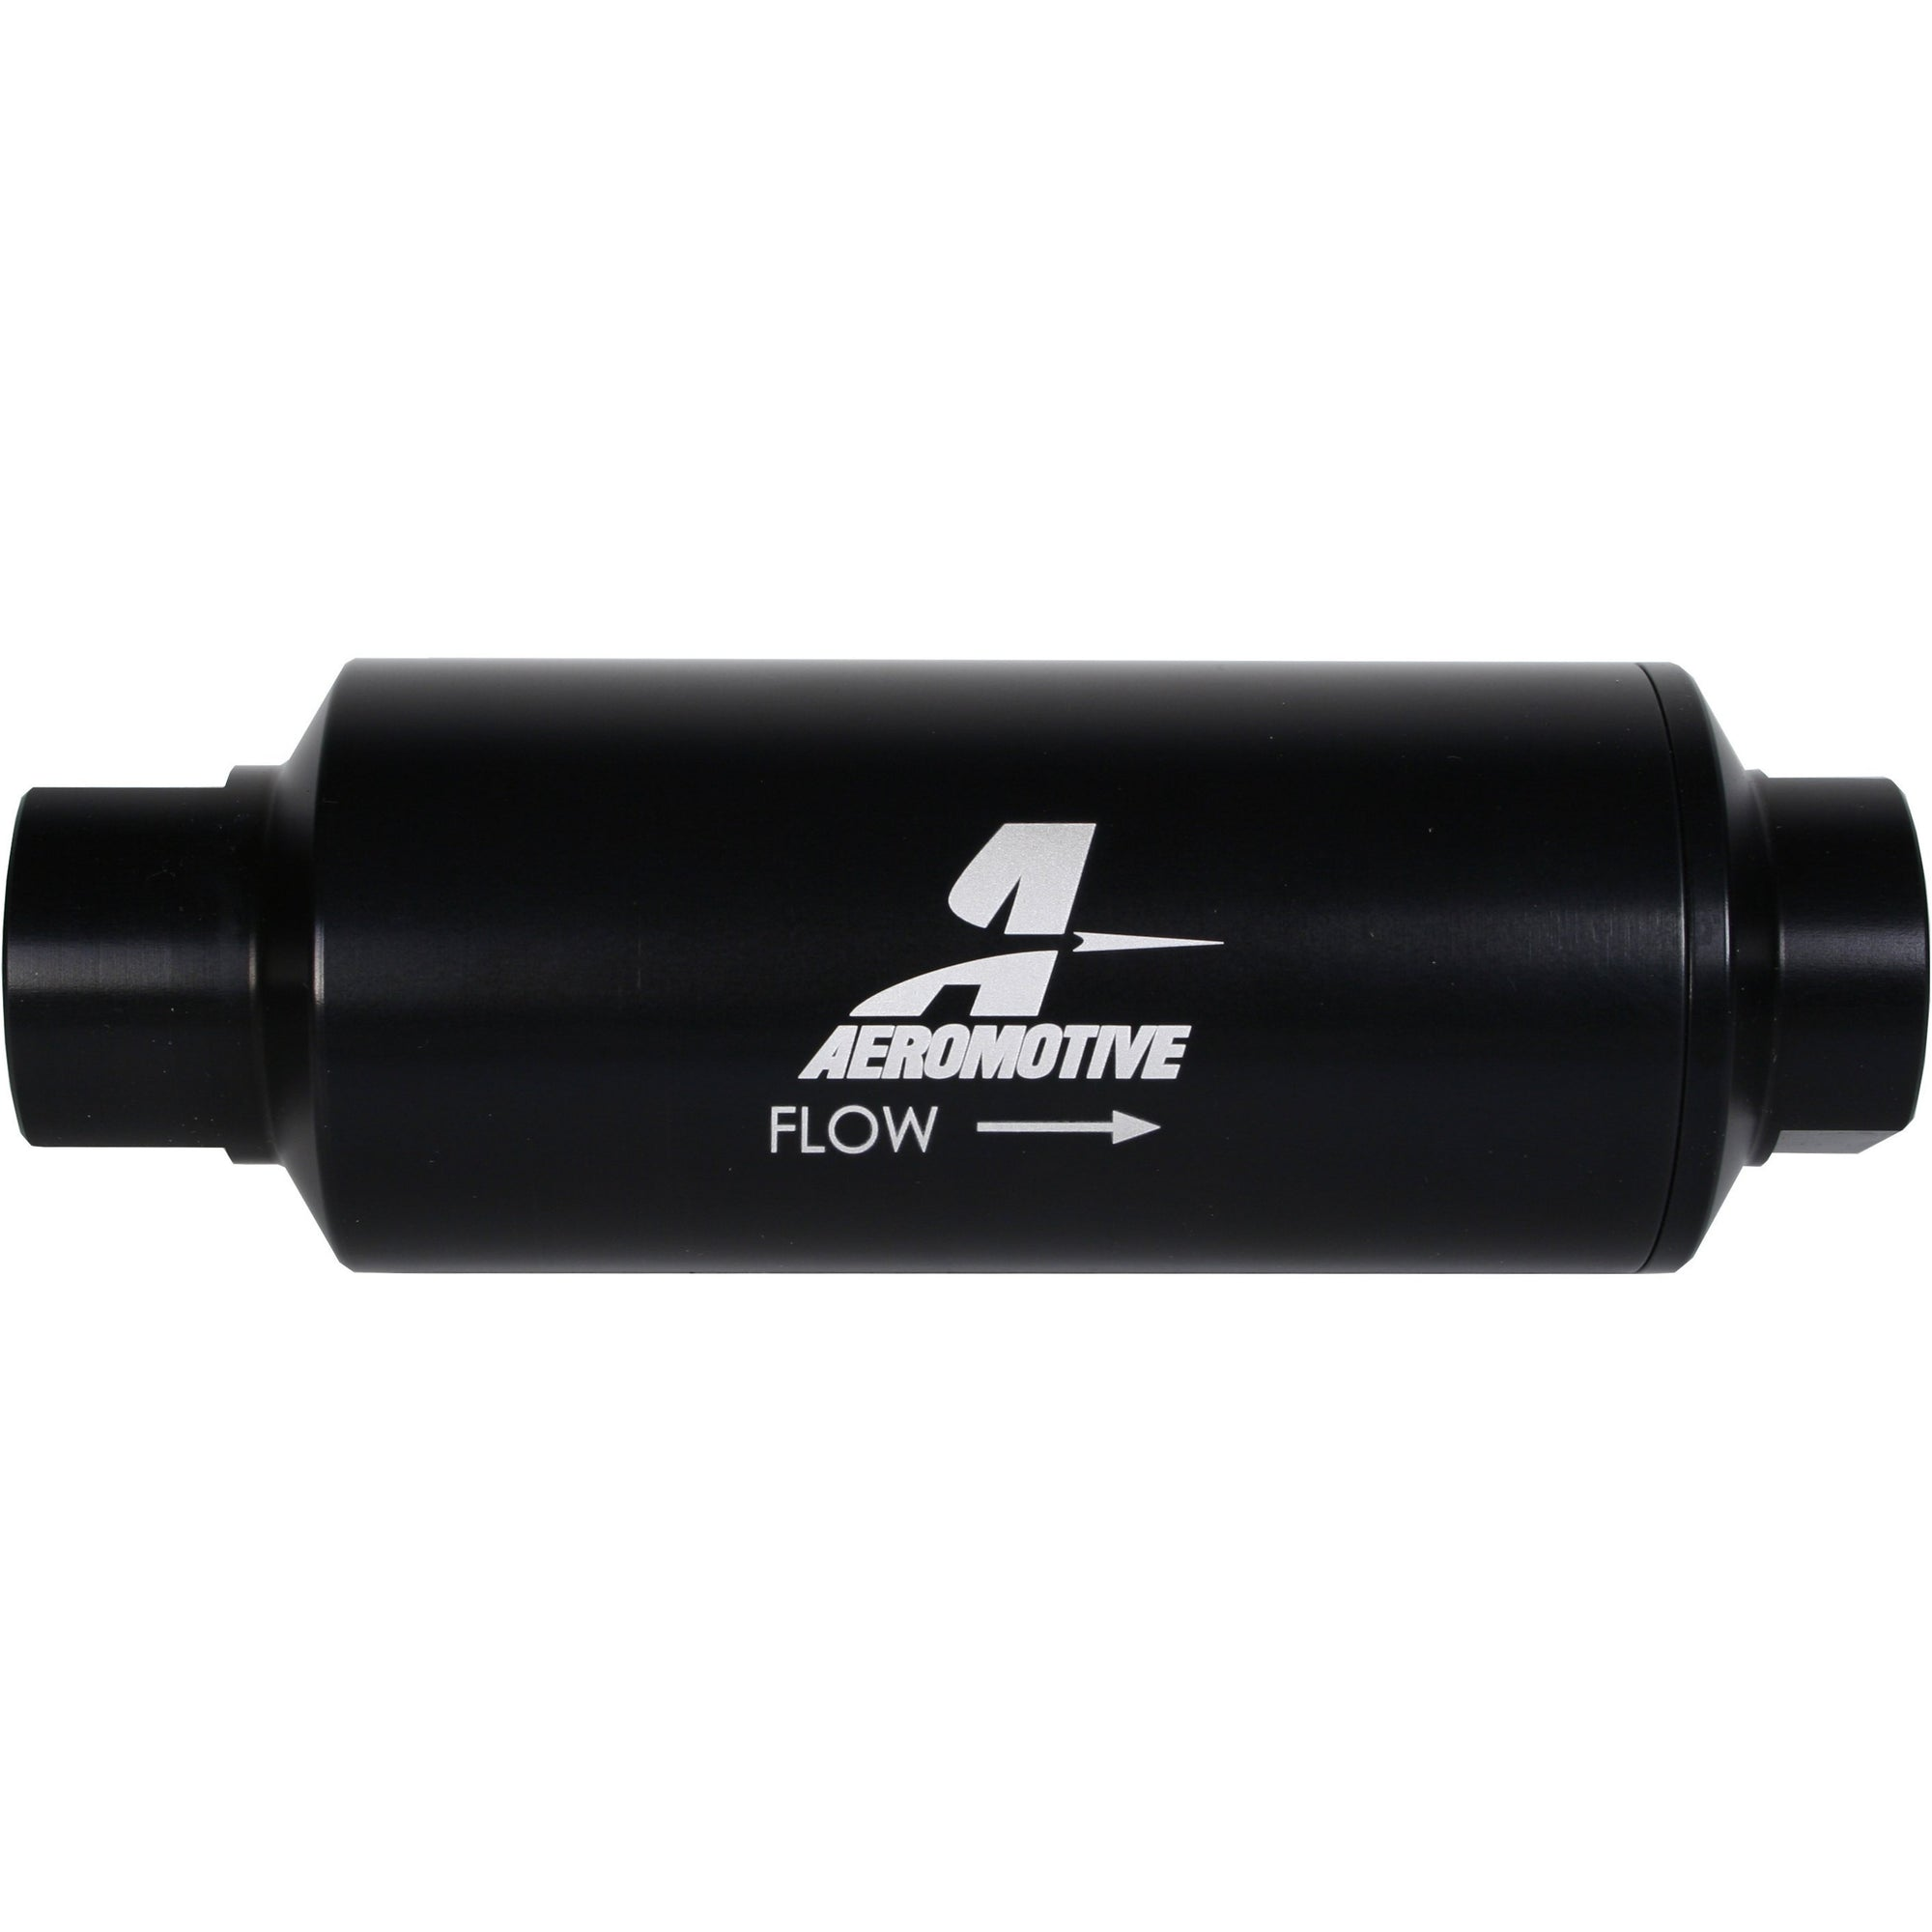 Aeromotive Female -12 AN ORB 40 Micron Stainless Filter 12343-Aeromotive-Motion Raceworks